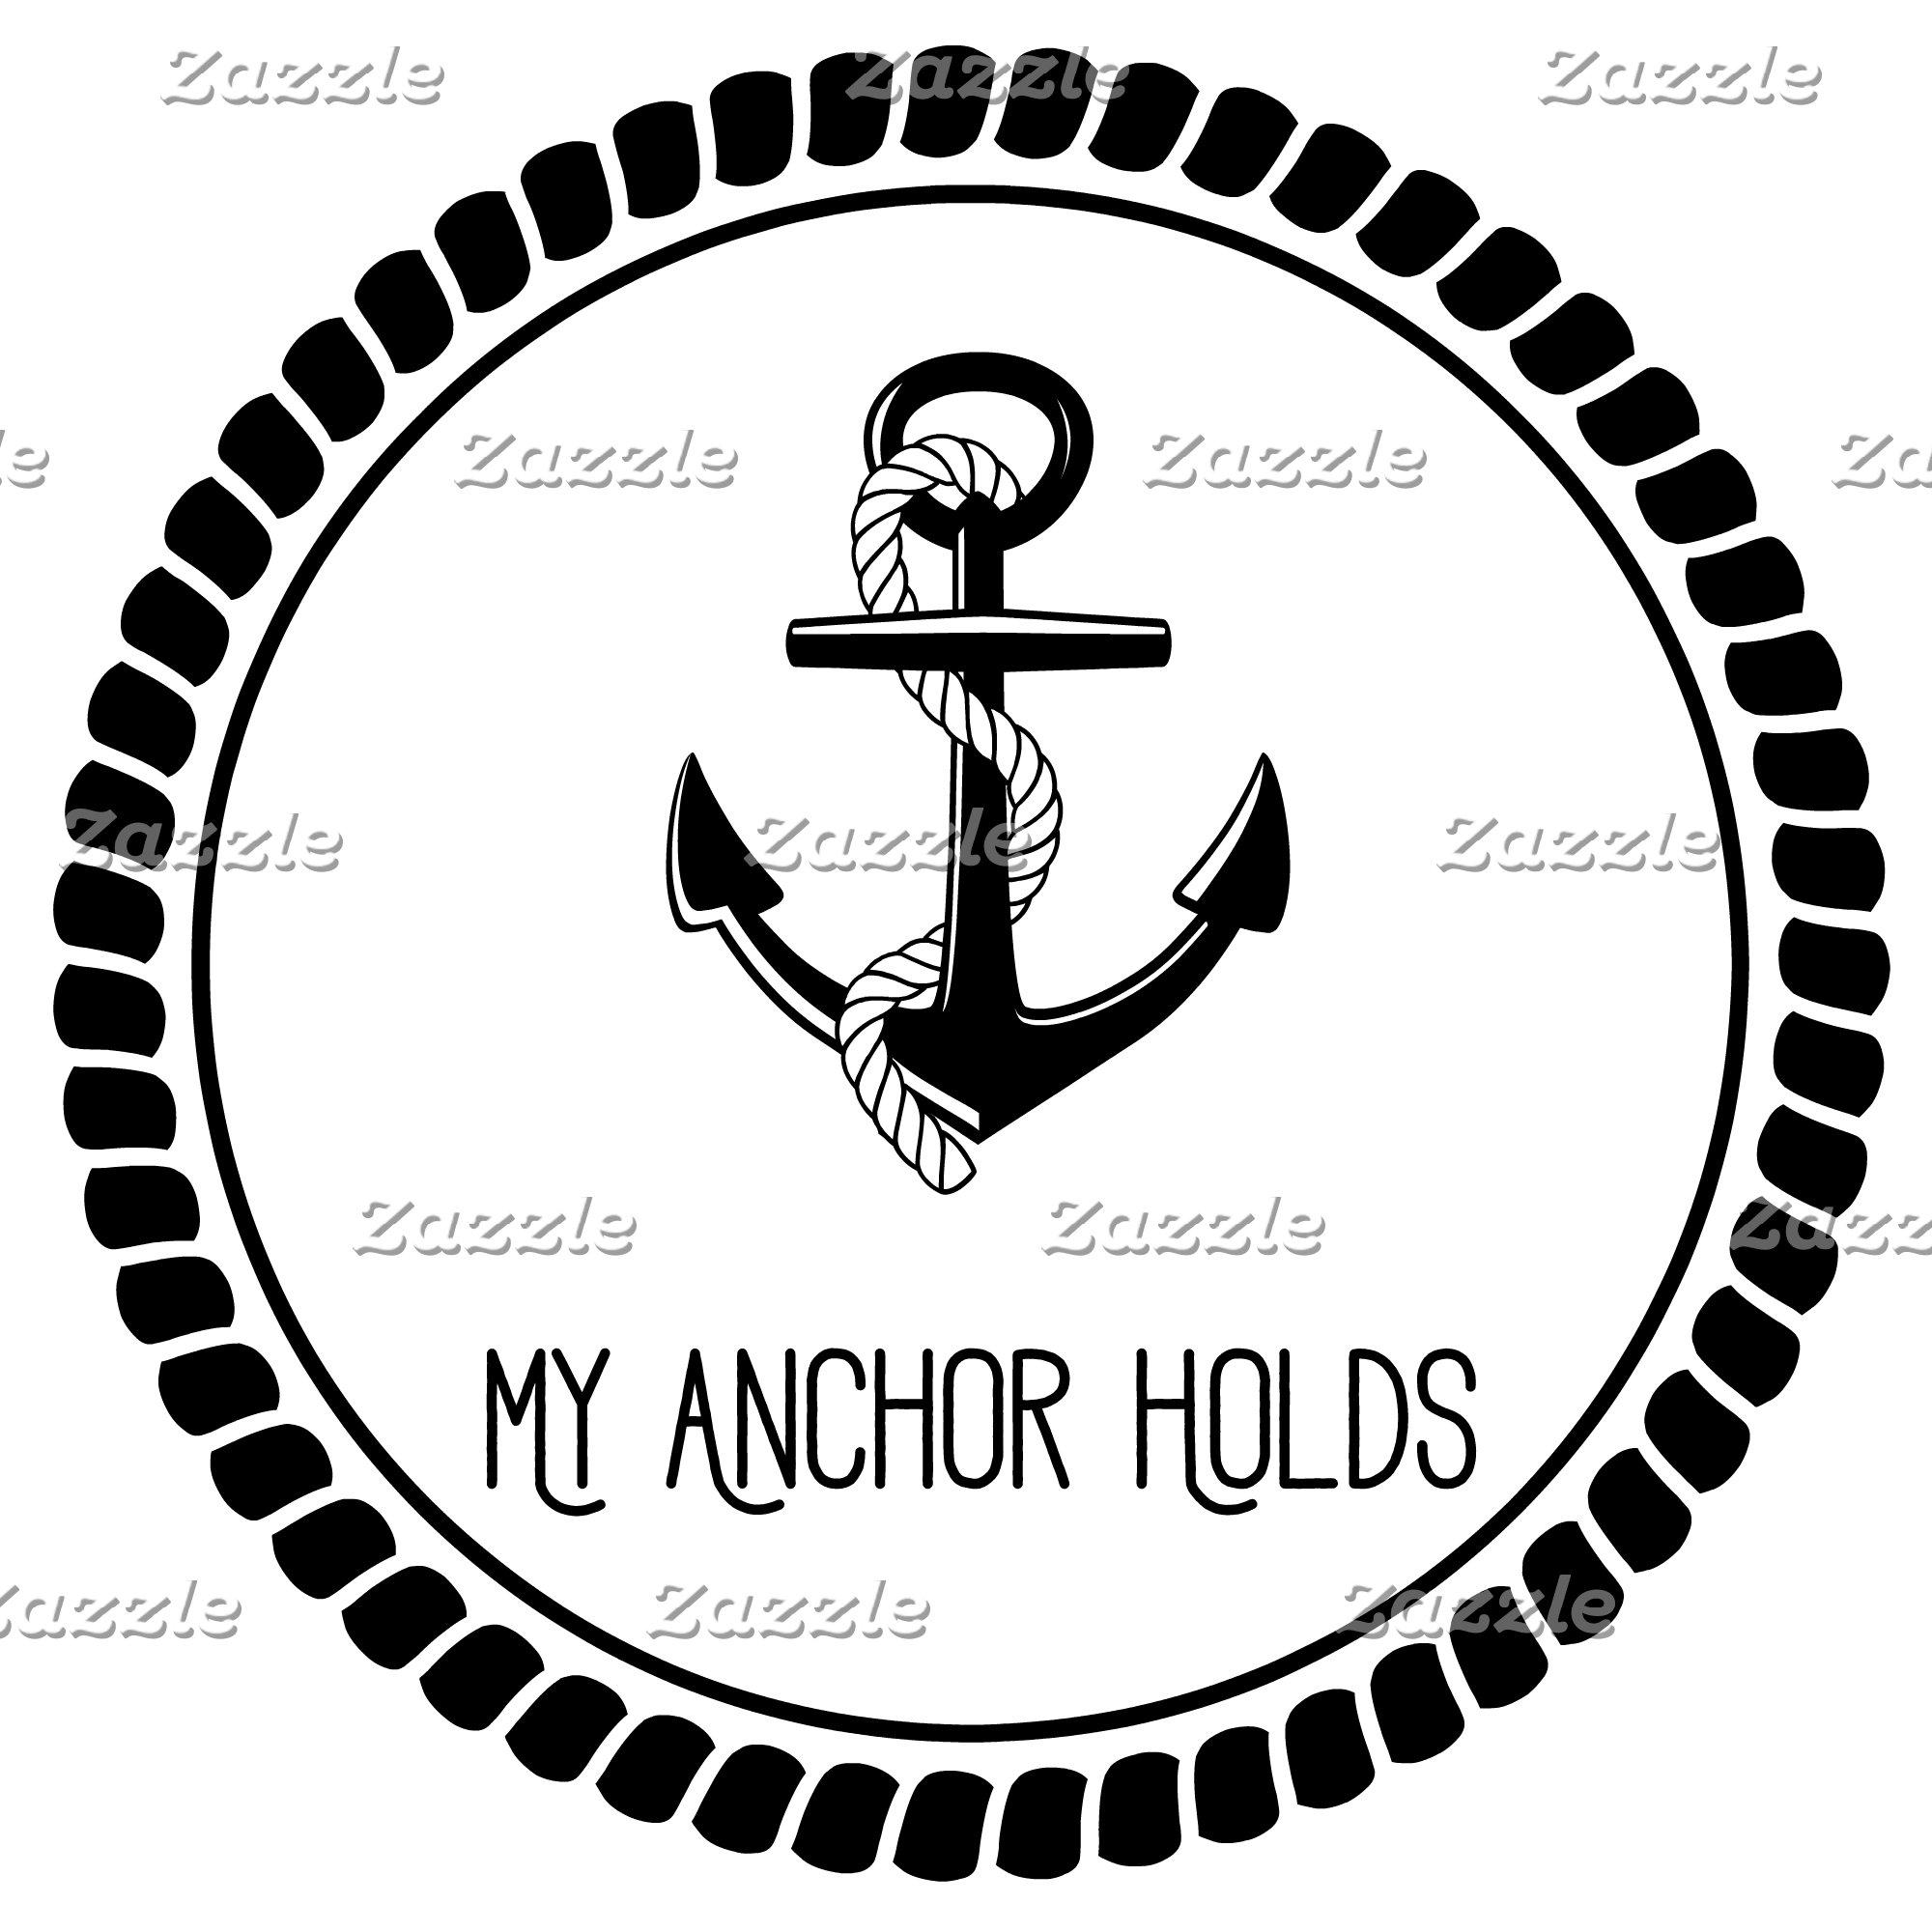 My Anchor Holds